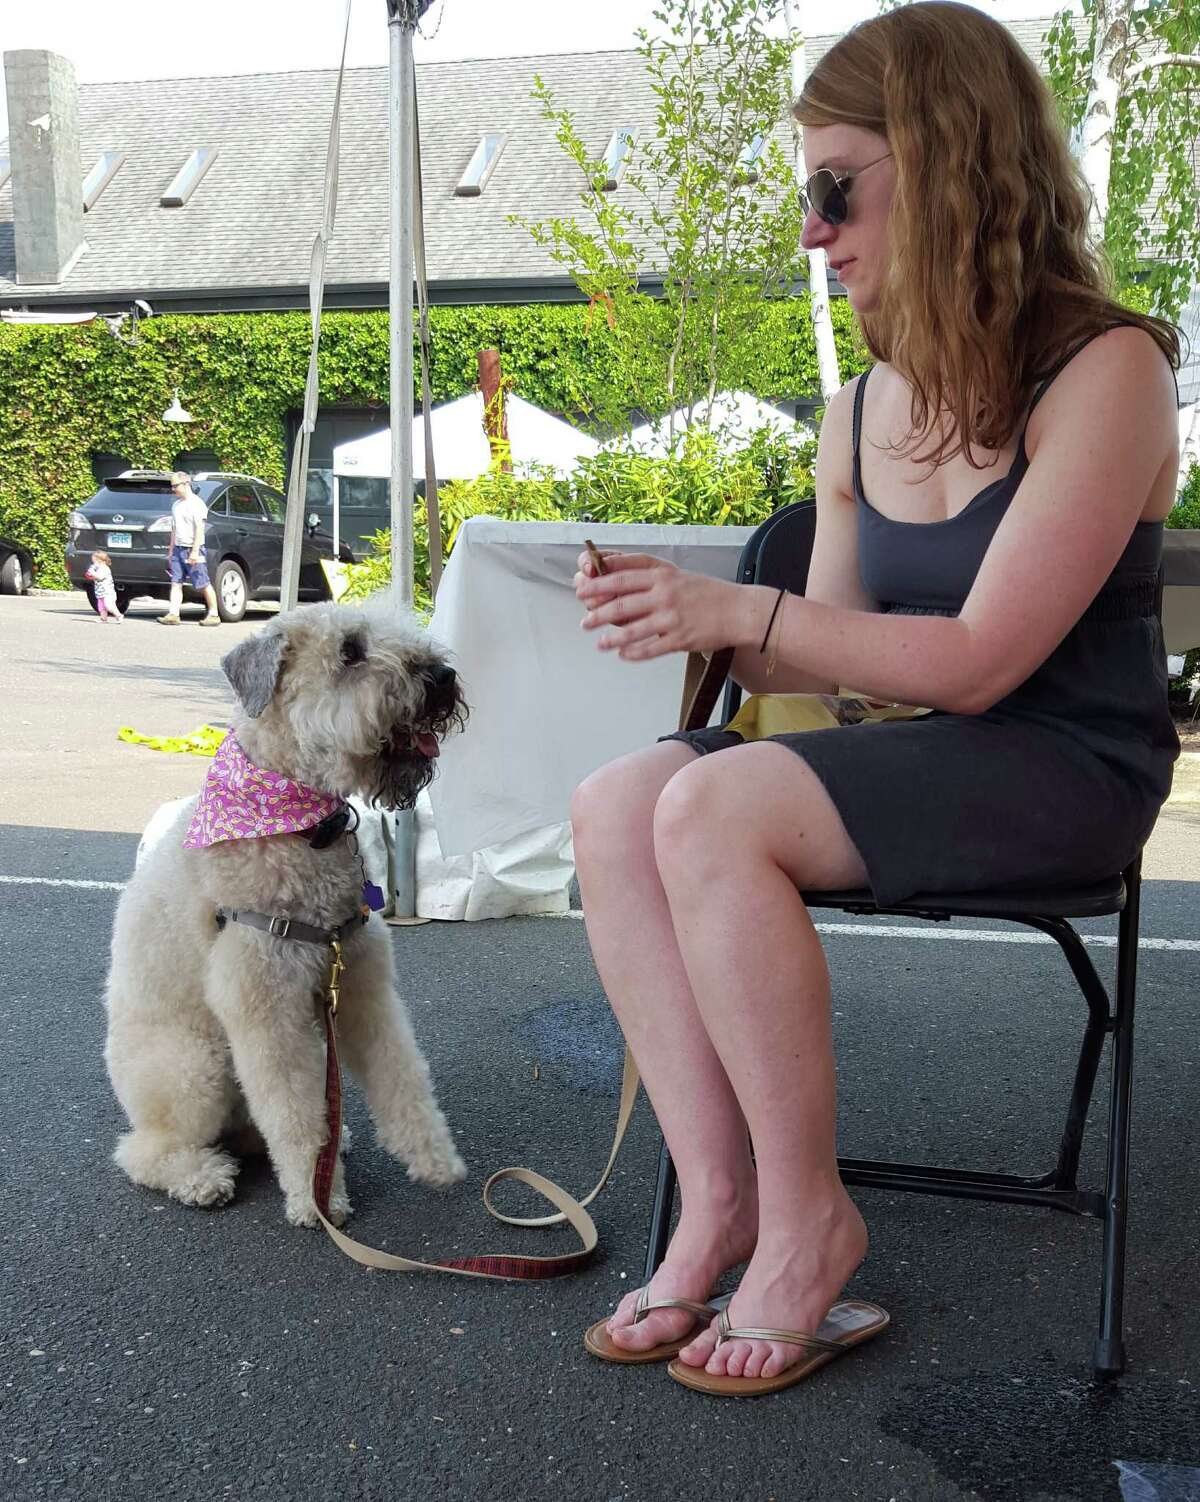 Jessica Calvey with Chloe, for whom Calvey developed a cricket-based, protein dog treat now being sold as Chloe's Treats.